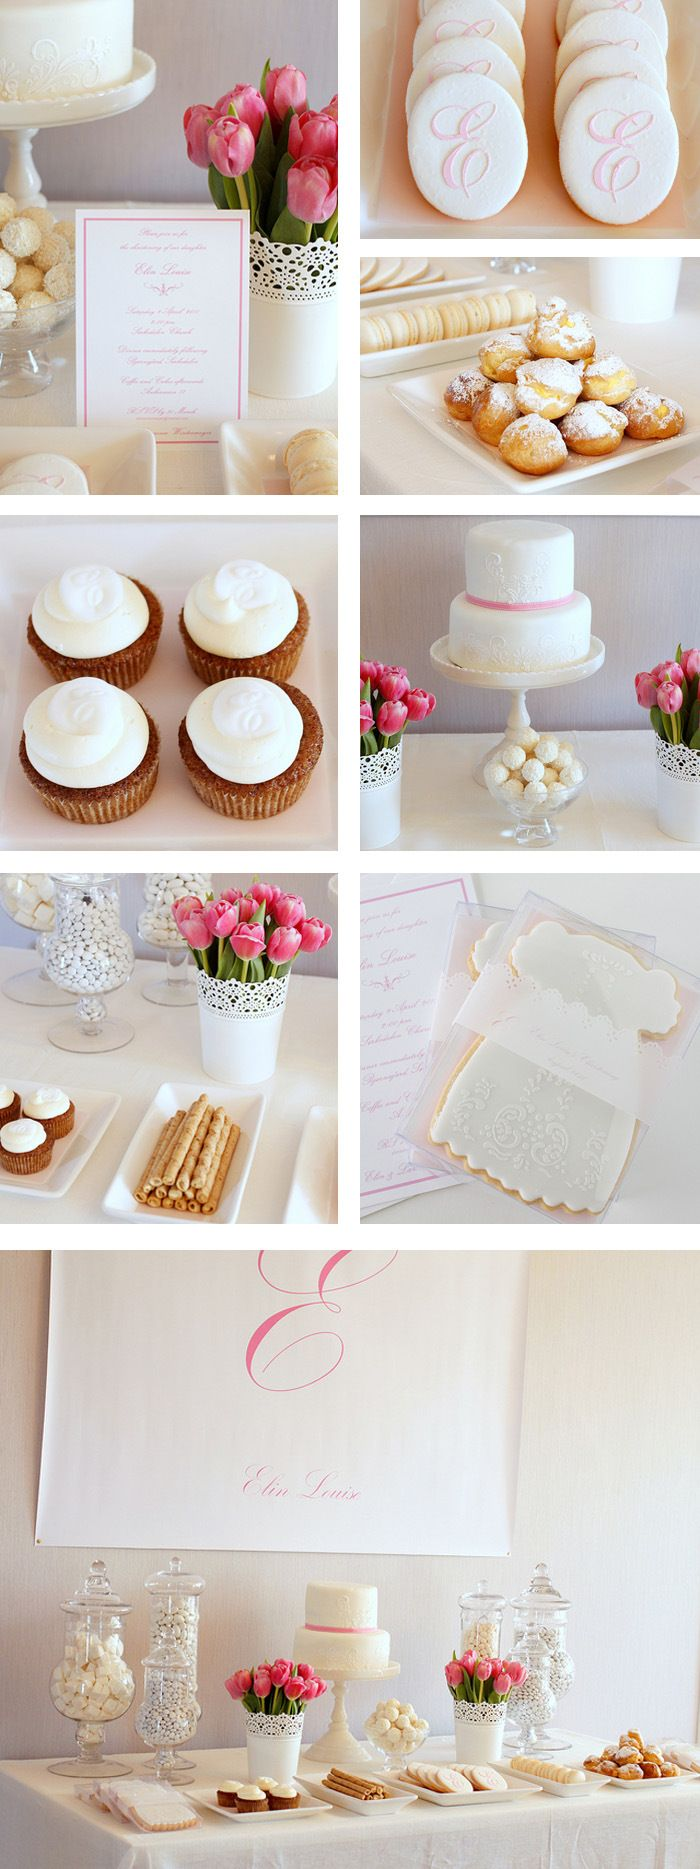 sweet christening Lace and Embroidery Dessert Table